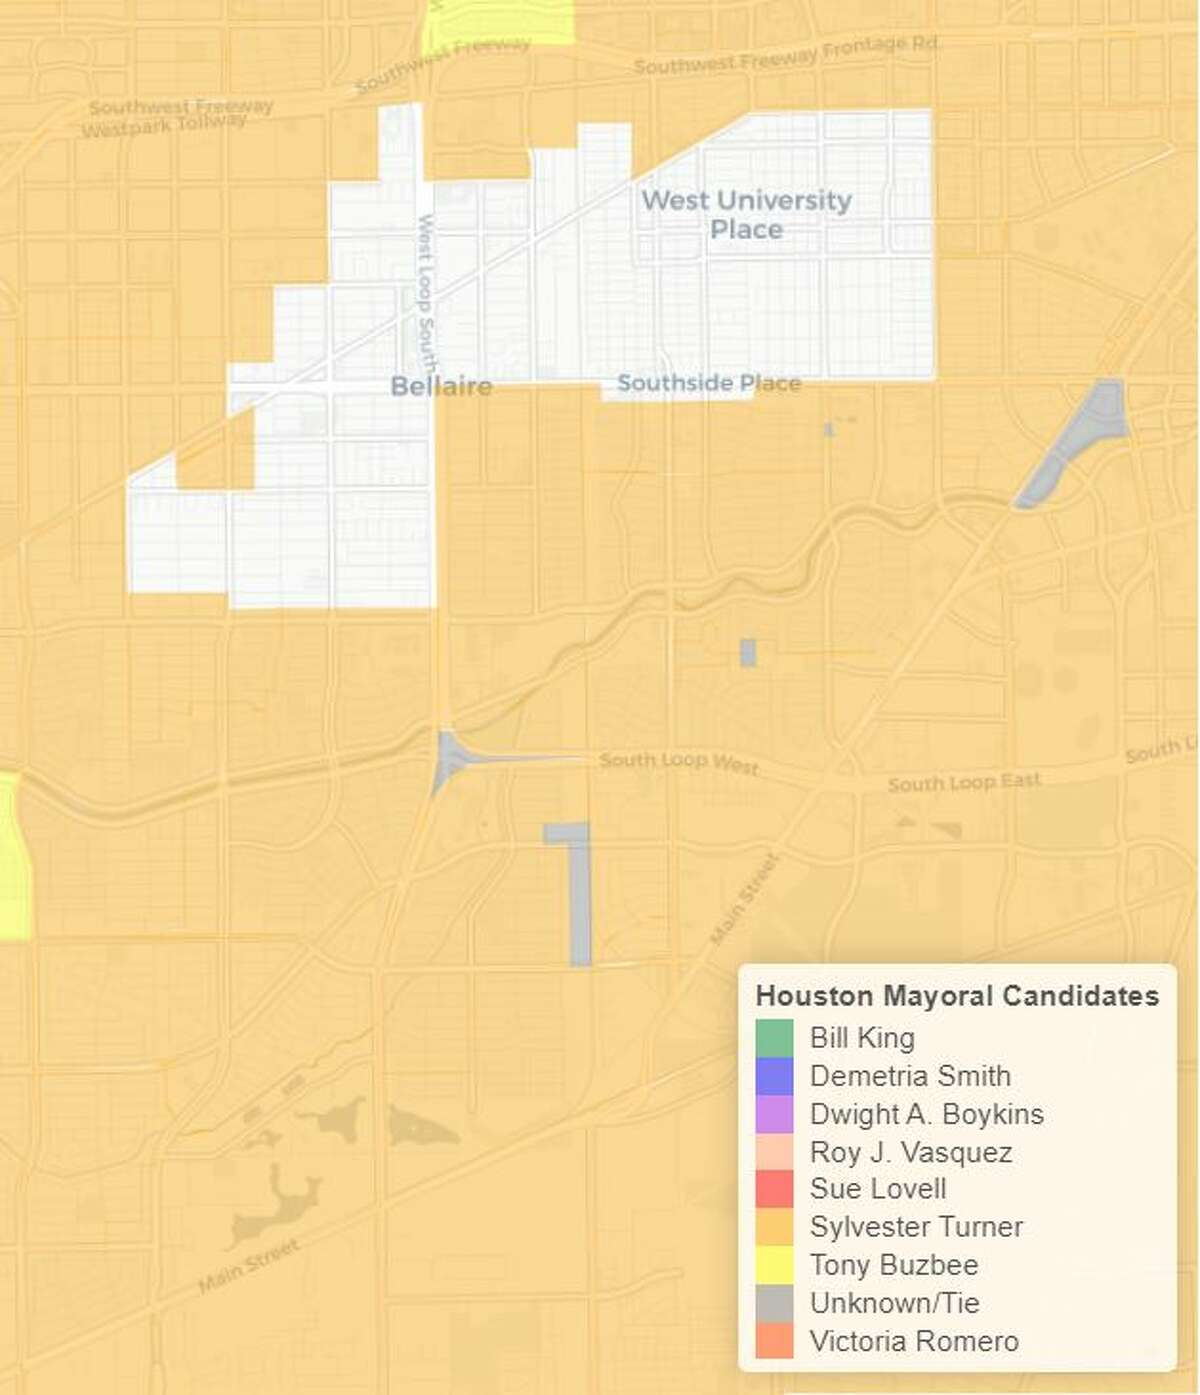 In Bellaire, voters chose Turner, which is similar to most inside-the-Loop precincts.